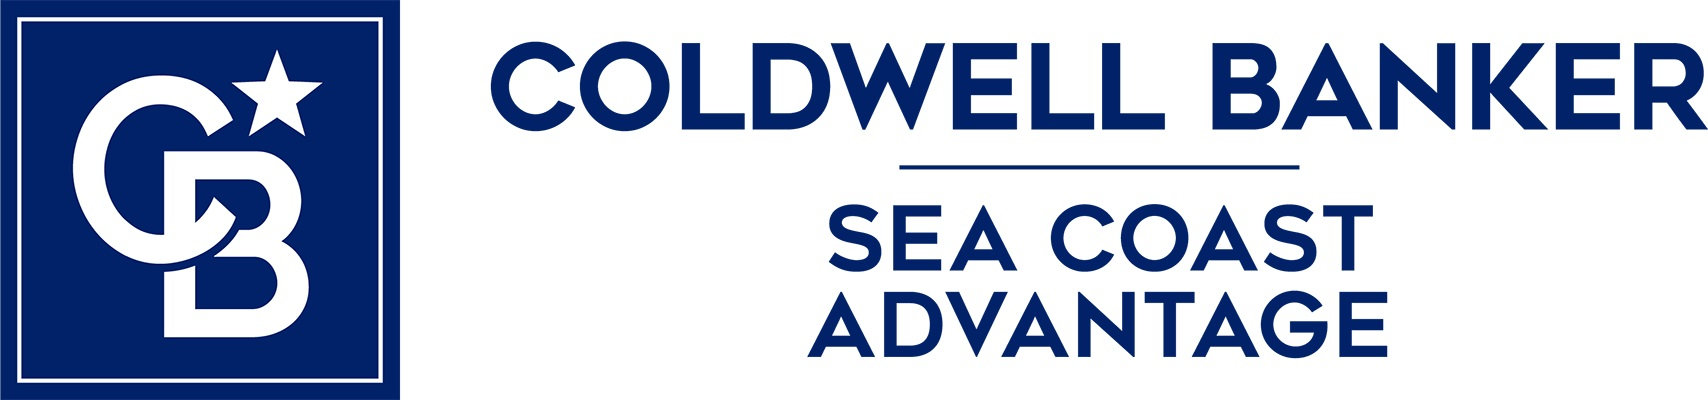 Ajay Singh - Coldwell Banker Sea Coast Advantage Realty